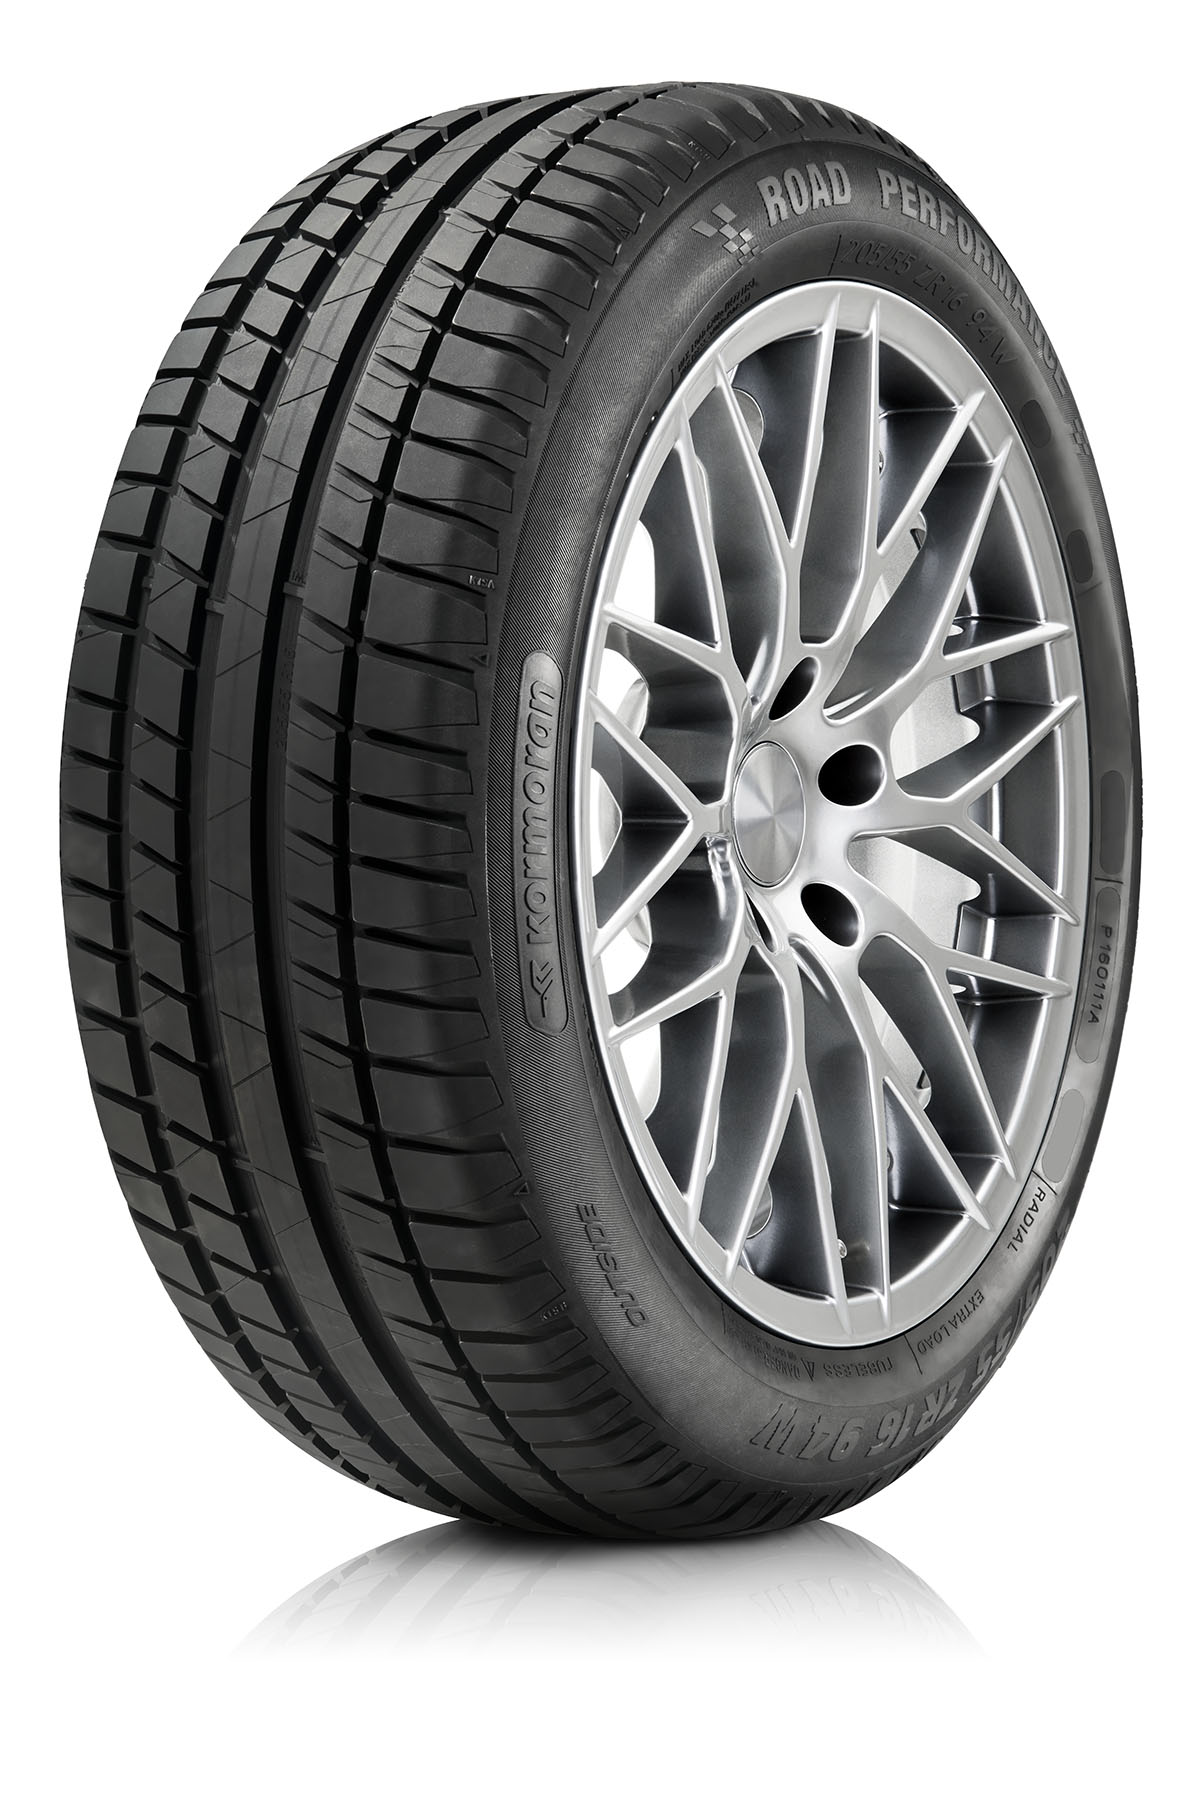 4 летние шины 205 / 55R16 KORMORAN ROAD PERFORMANCE